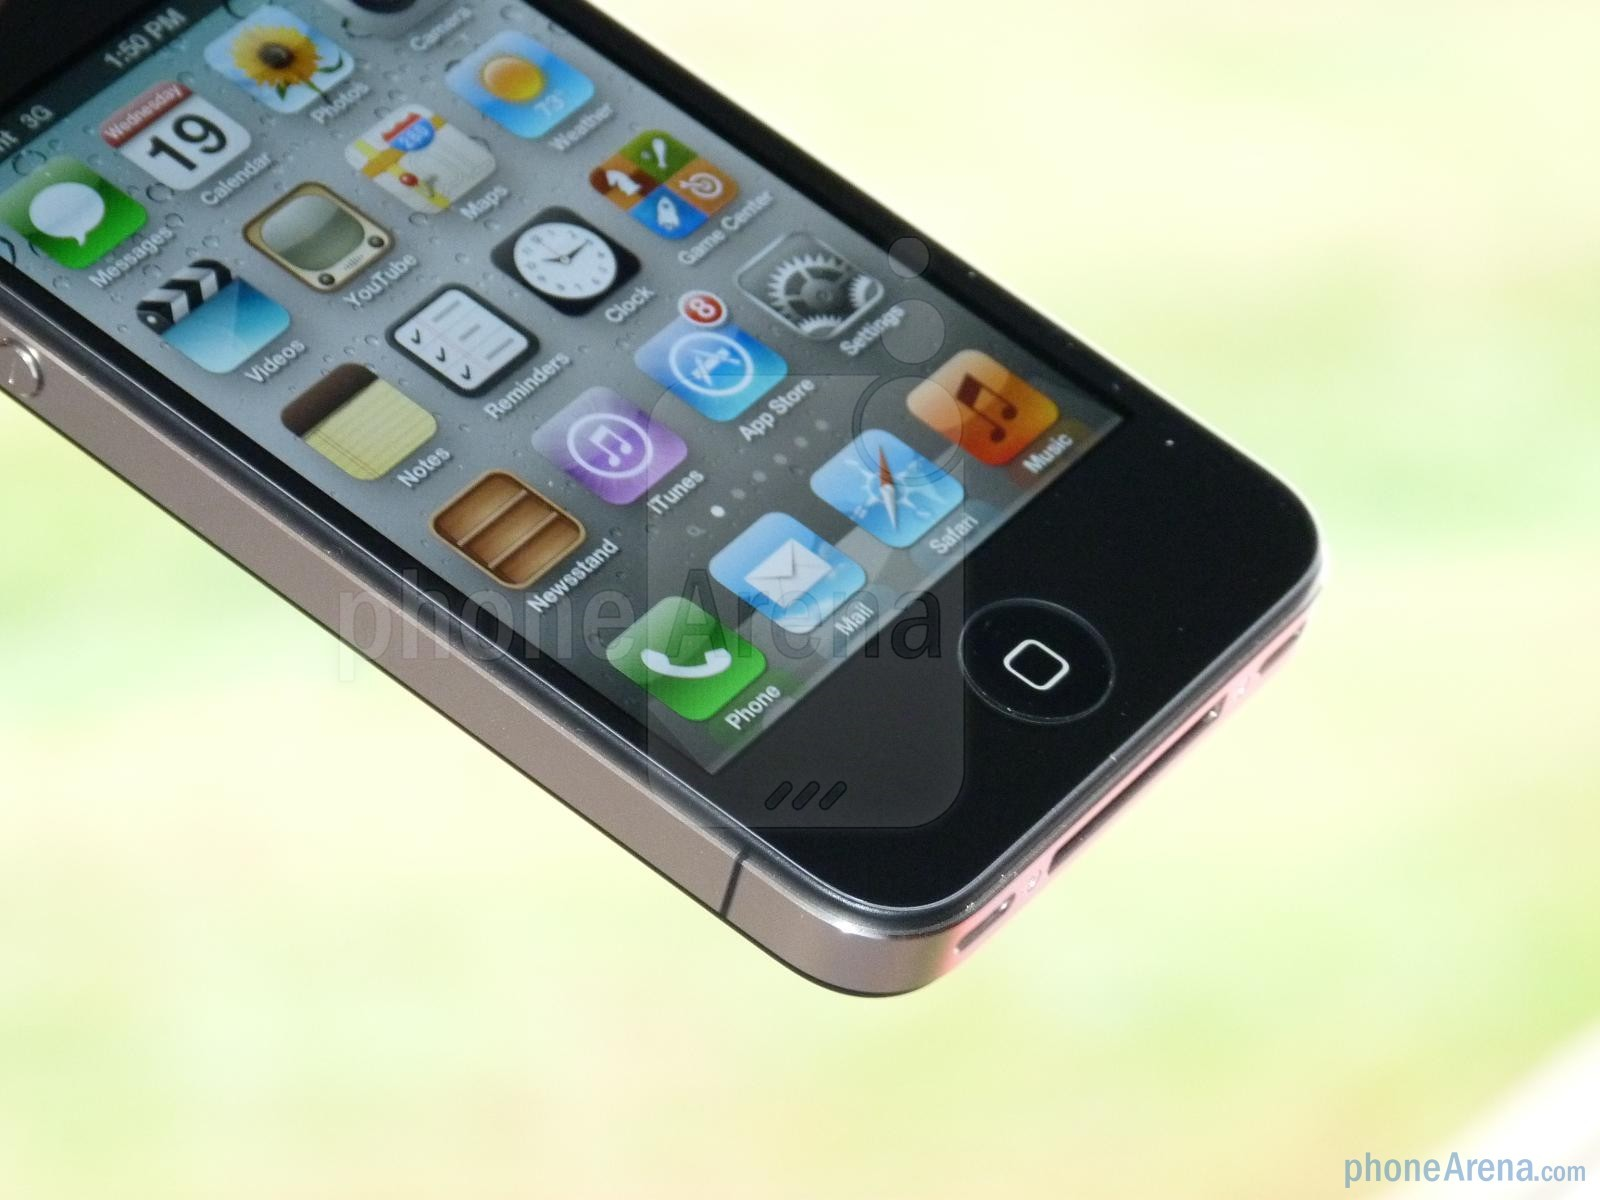 iPhone 4s 16GB 09